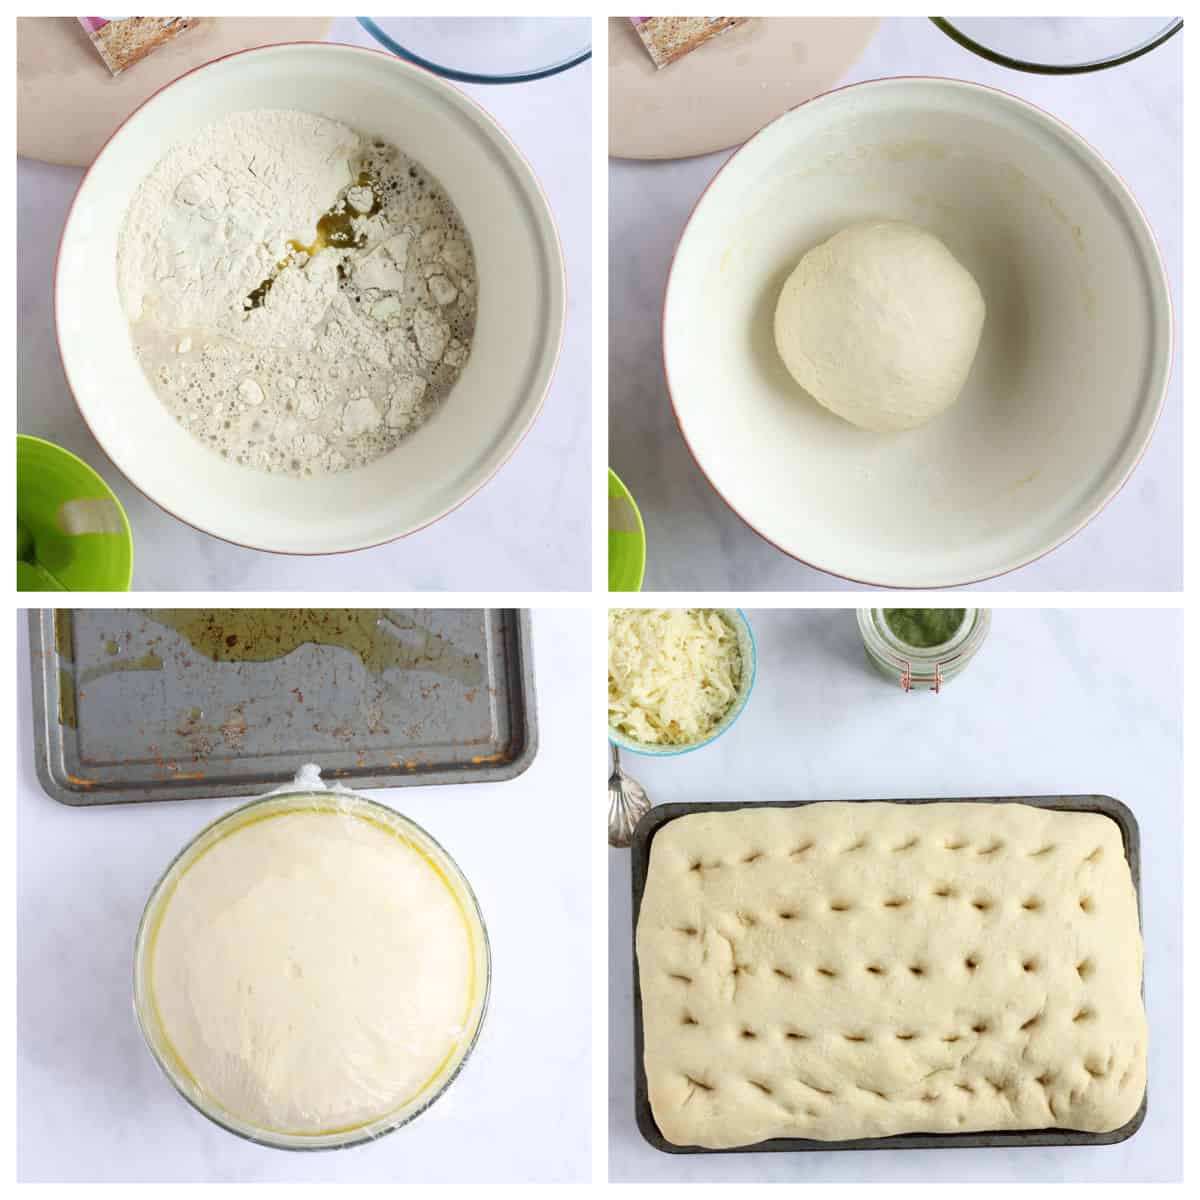 Step by step photo instructions for making focaccia.